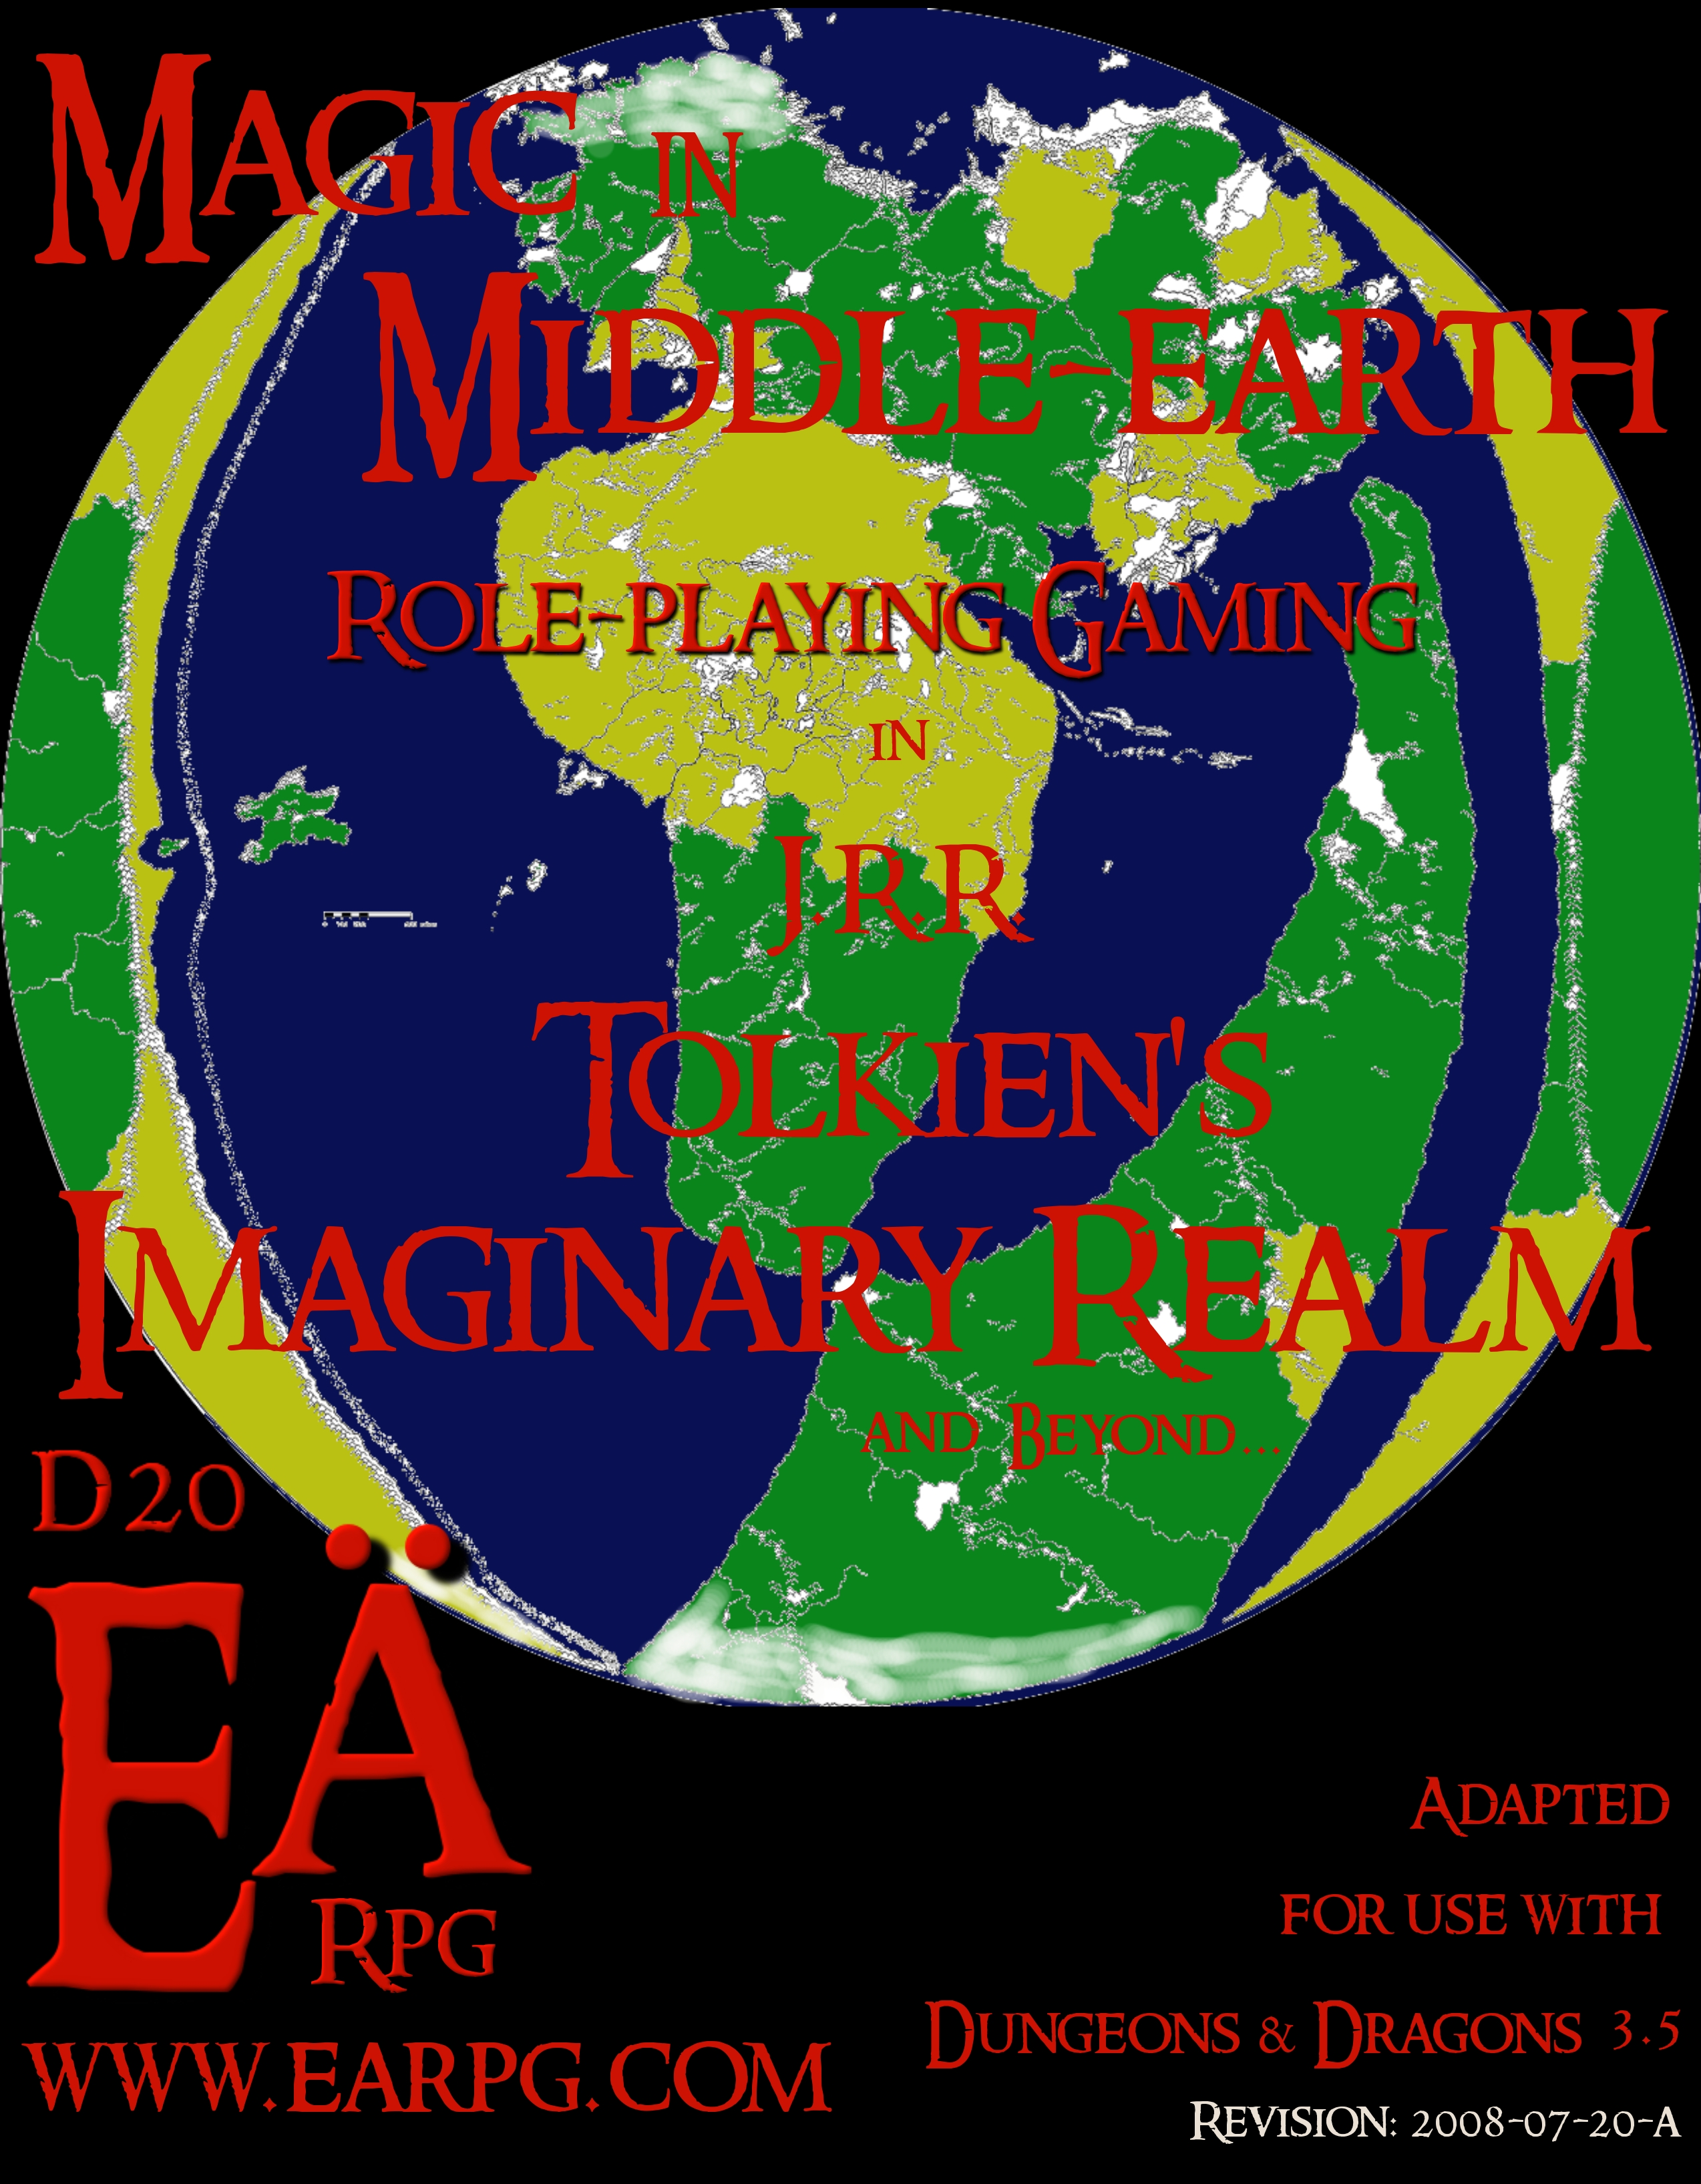 Updated Magic in Eä d20 3.5 Middle-earth version zf - Shadow Rules Early draft